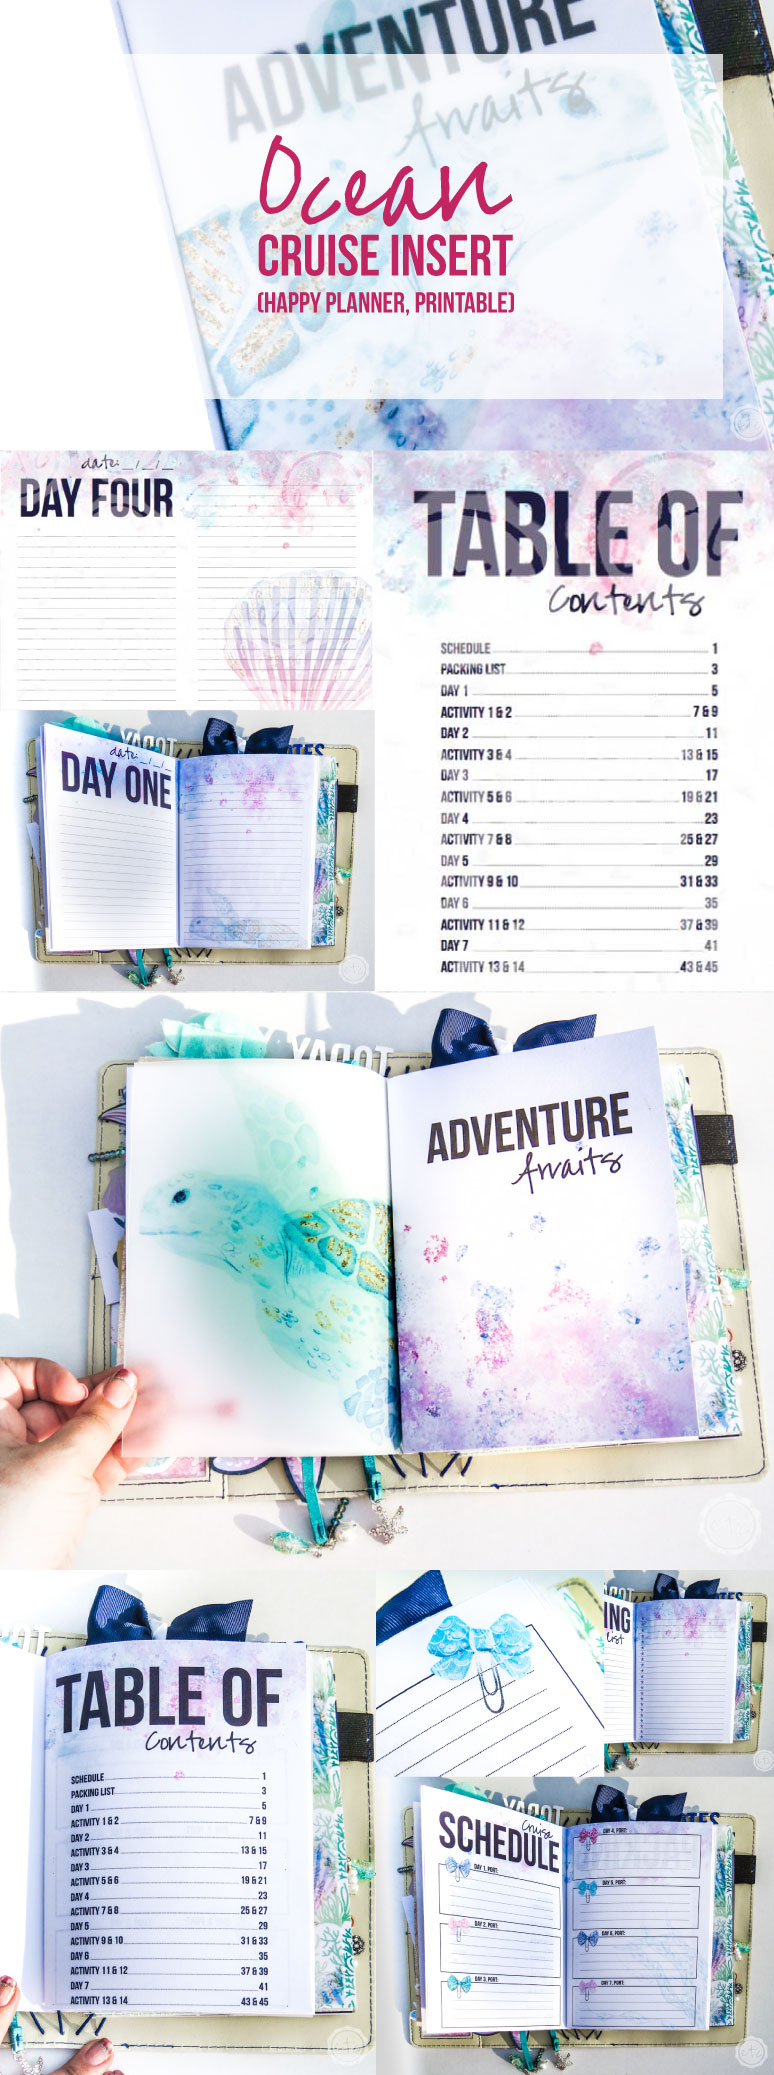 photo relating to Happy Planner Printable referred to as Ocean Include Cruise (Delighted Planner, Printable)